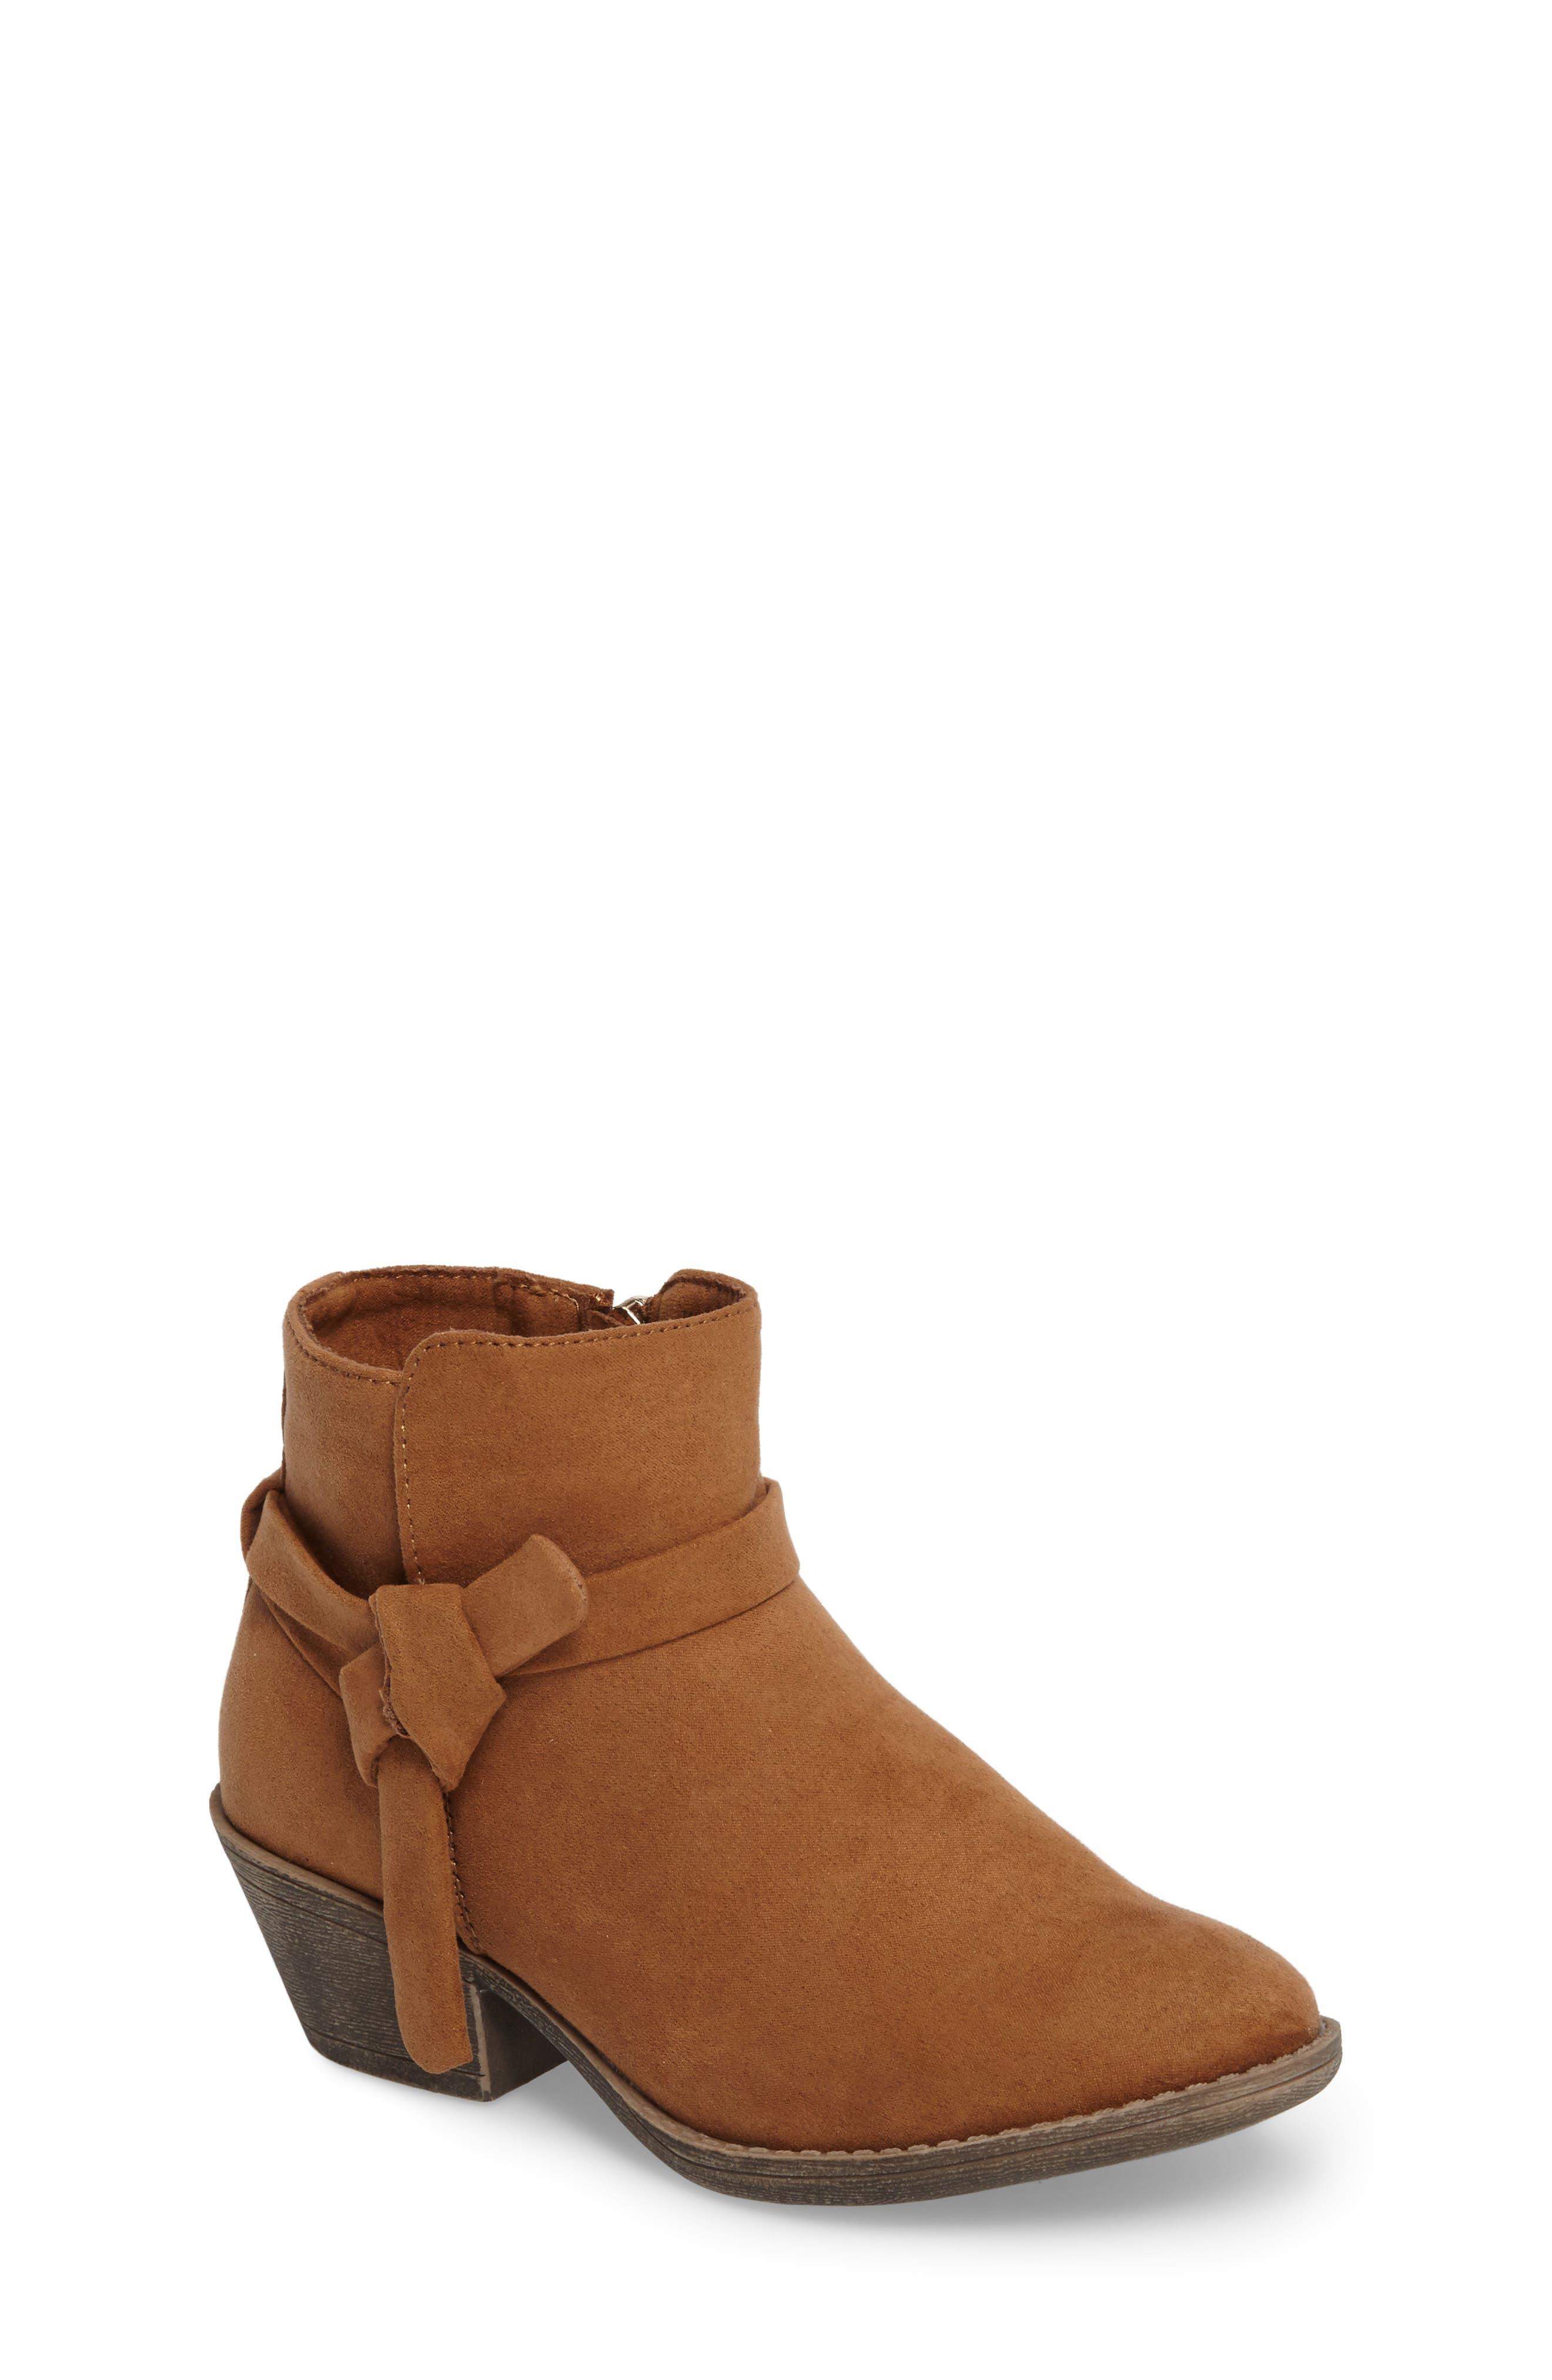 Kenneth Cole New York Taylor Bootie (Toddler, Little Kid & Big Kid)